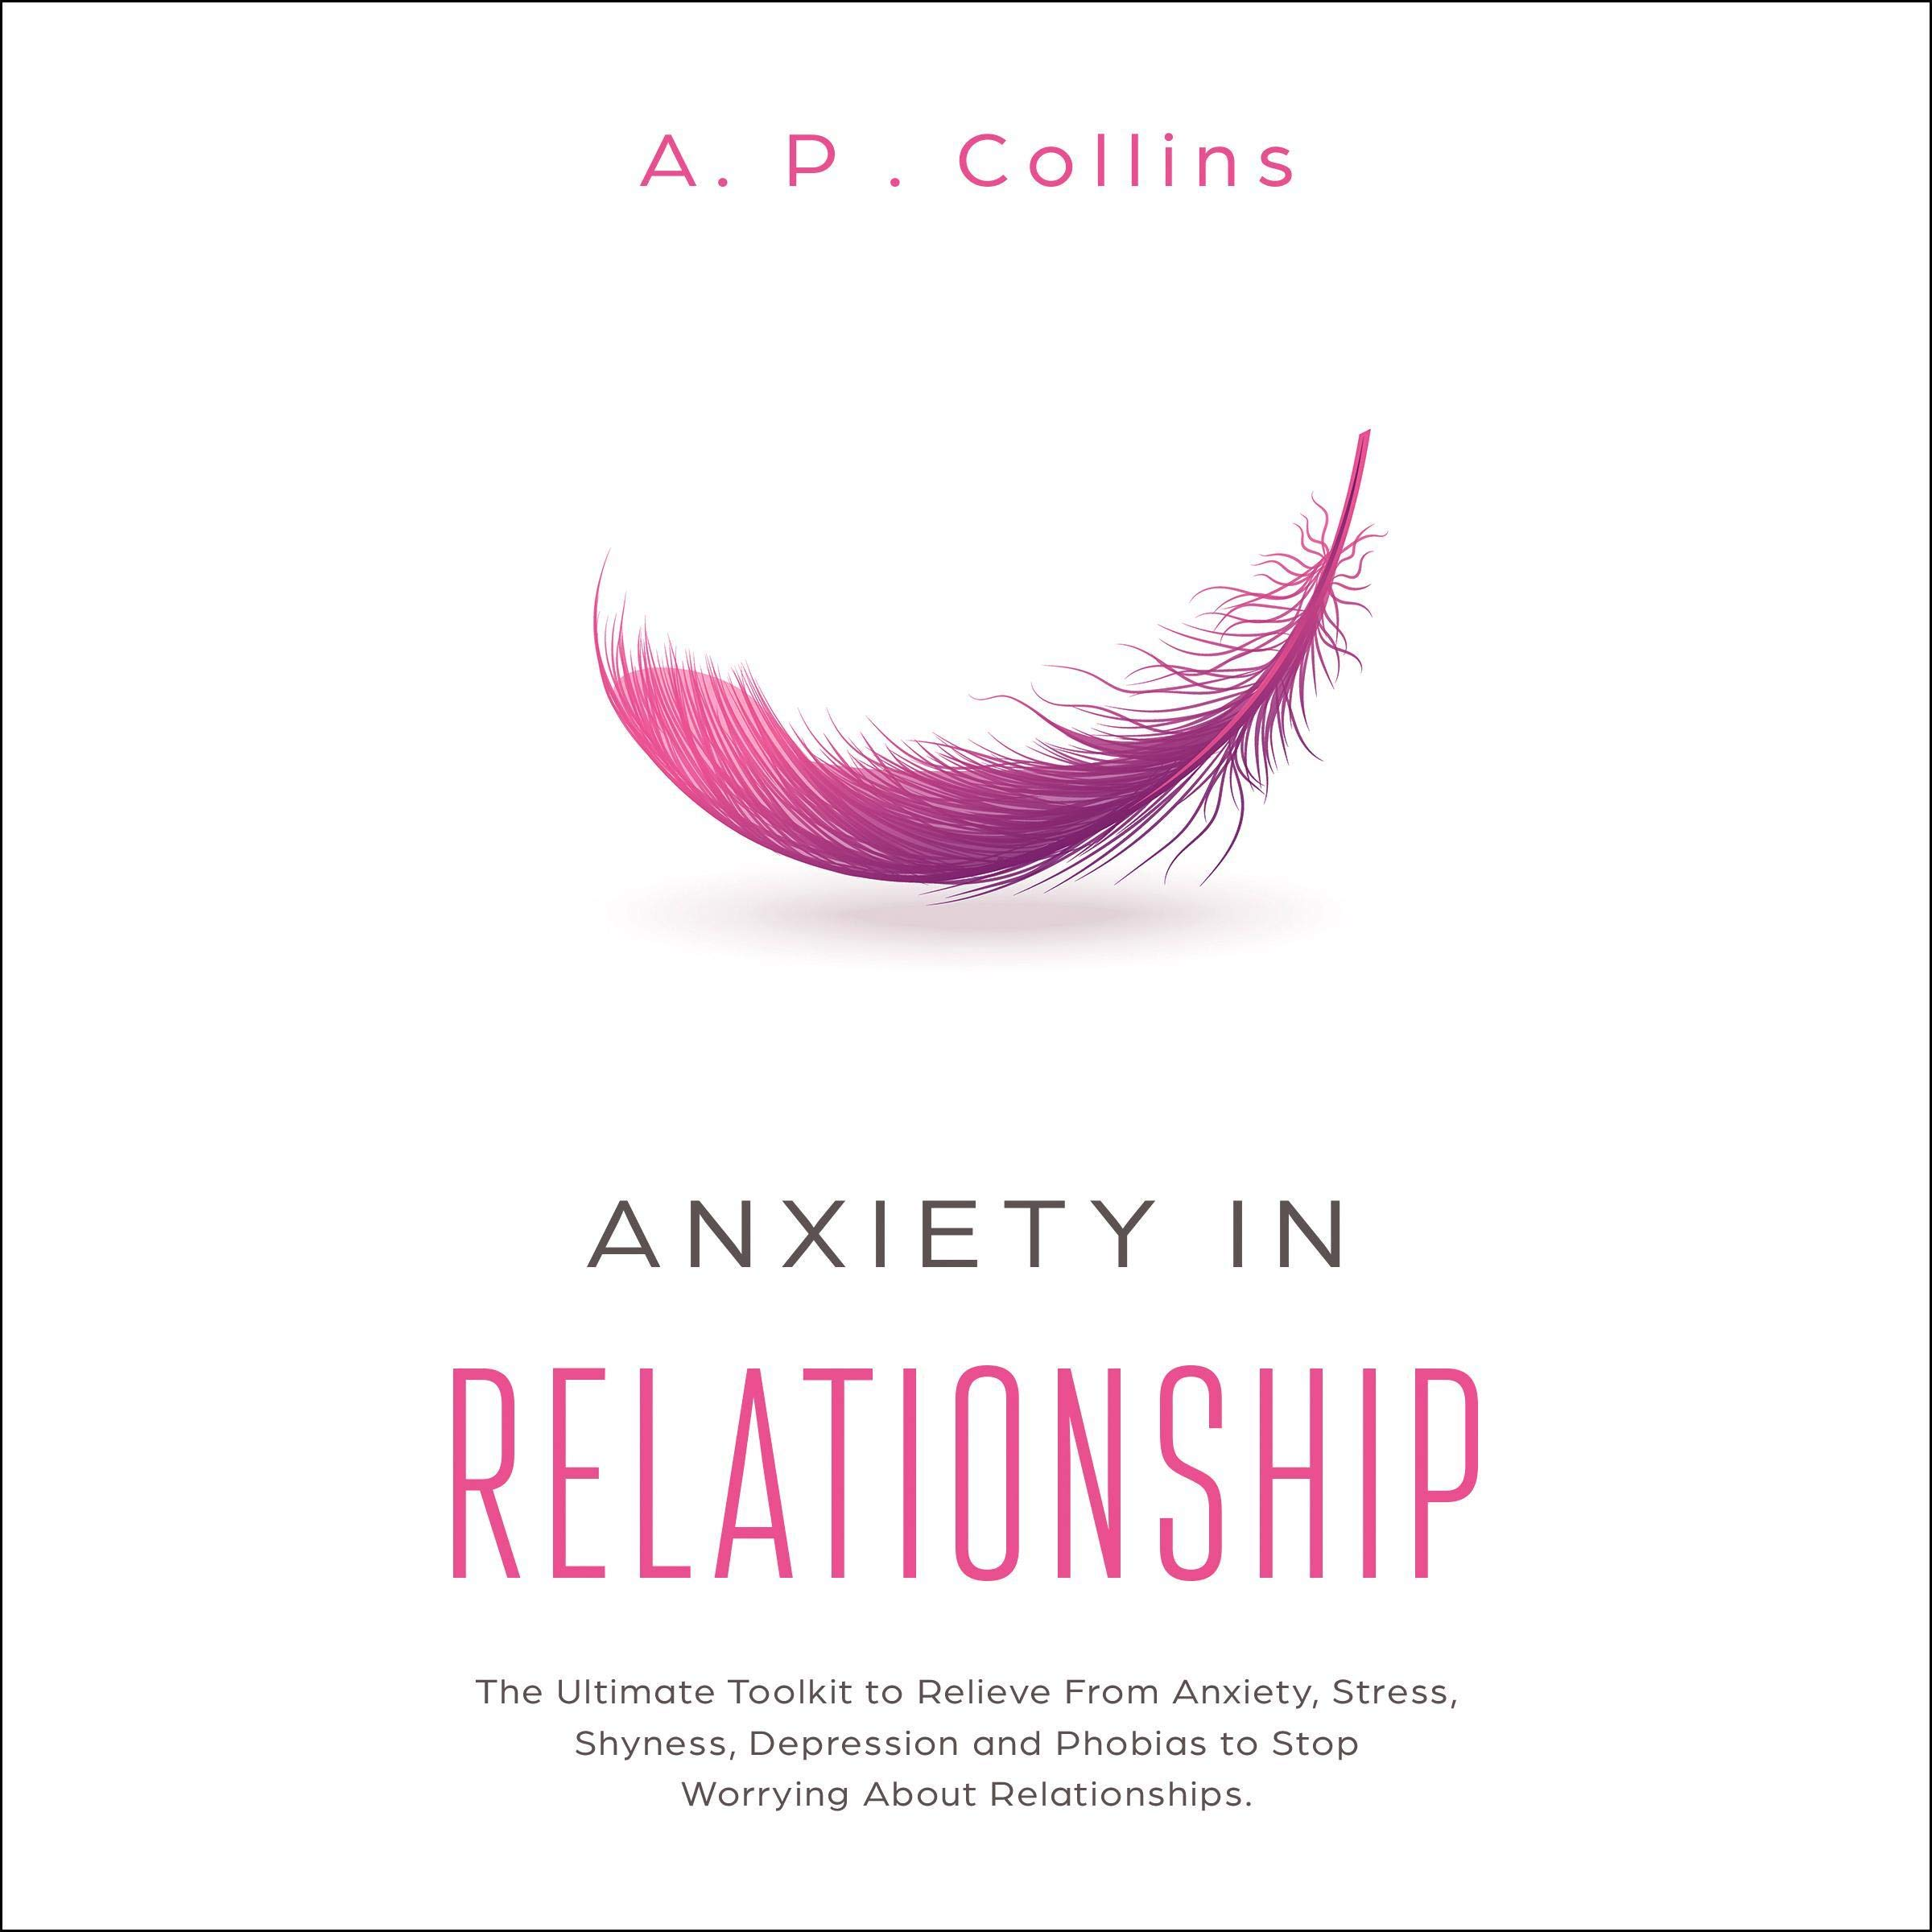 Download Anxiety in Relationship: The Ultimate Toolkit to Relieve from Anxiety, Stress, Shyness, Depression and Phobias to Stop Worrying About Relationships by A. P. Collins